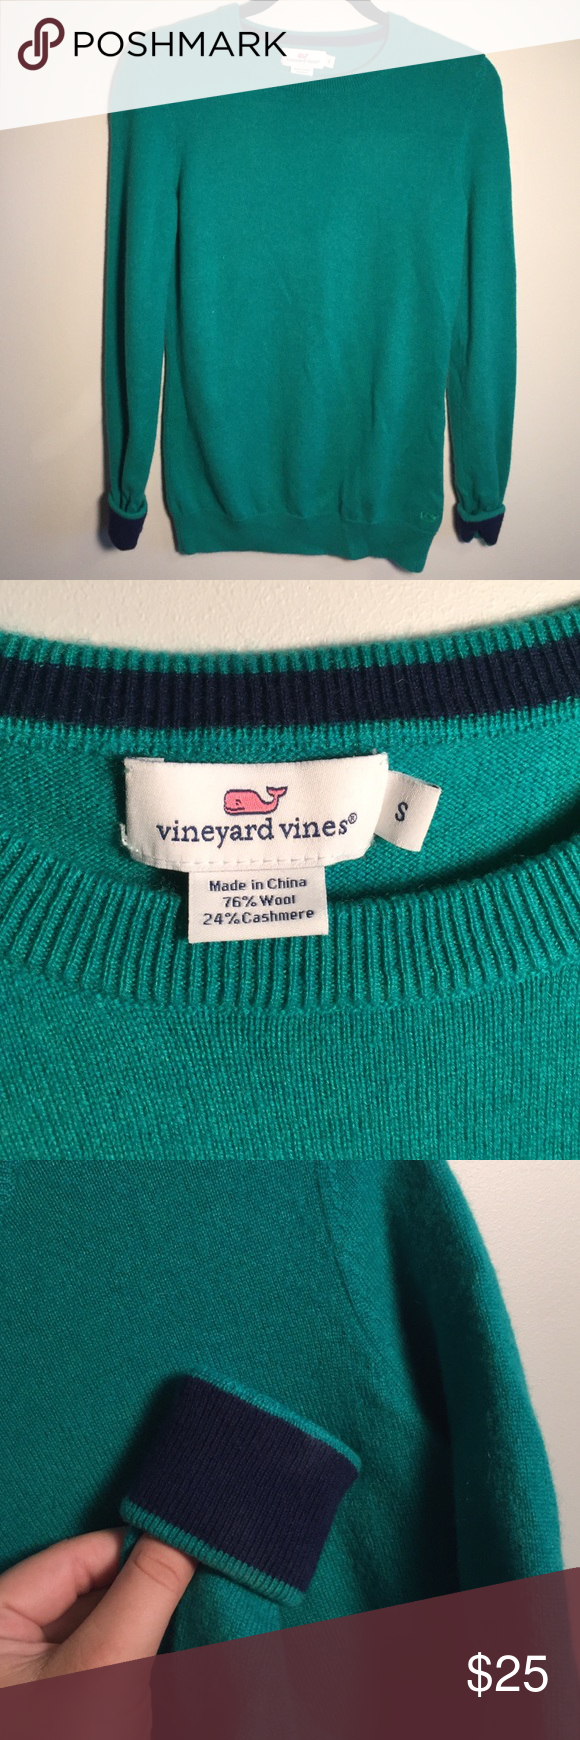 Vineyard Vines Green Sweater w/ Navy Detailing Smoke and Pet Free Home! Ships in 2 business days or it's free! Beautiful Vineyard Vines Sweater with Navy cuffs. 76% wool and 26% cashmere. Beautiful condition! Vineyard Vines Sweaters Crew & Scoop Necks